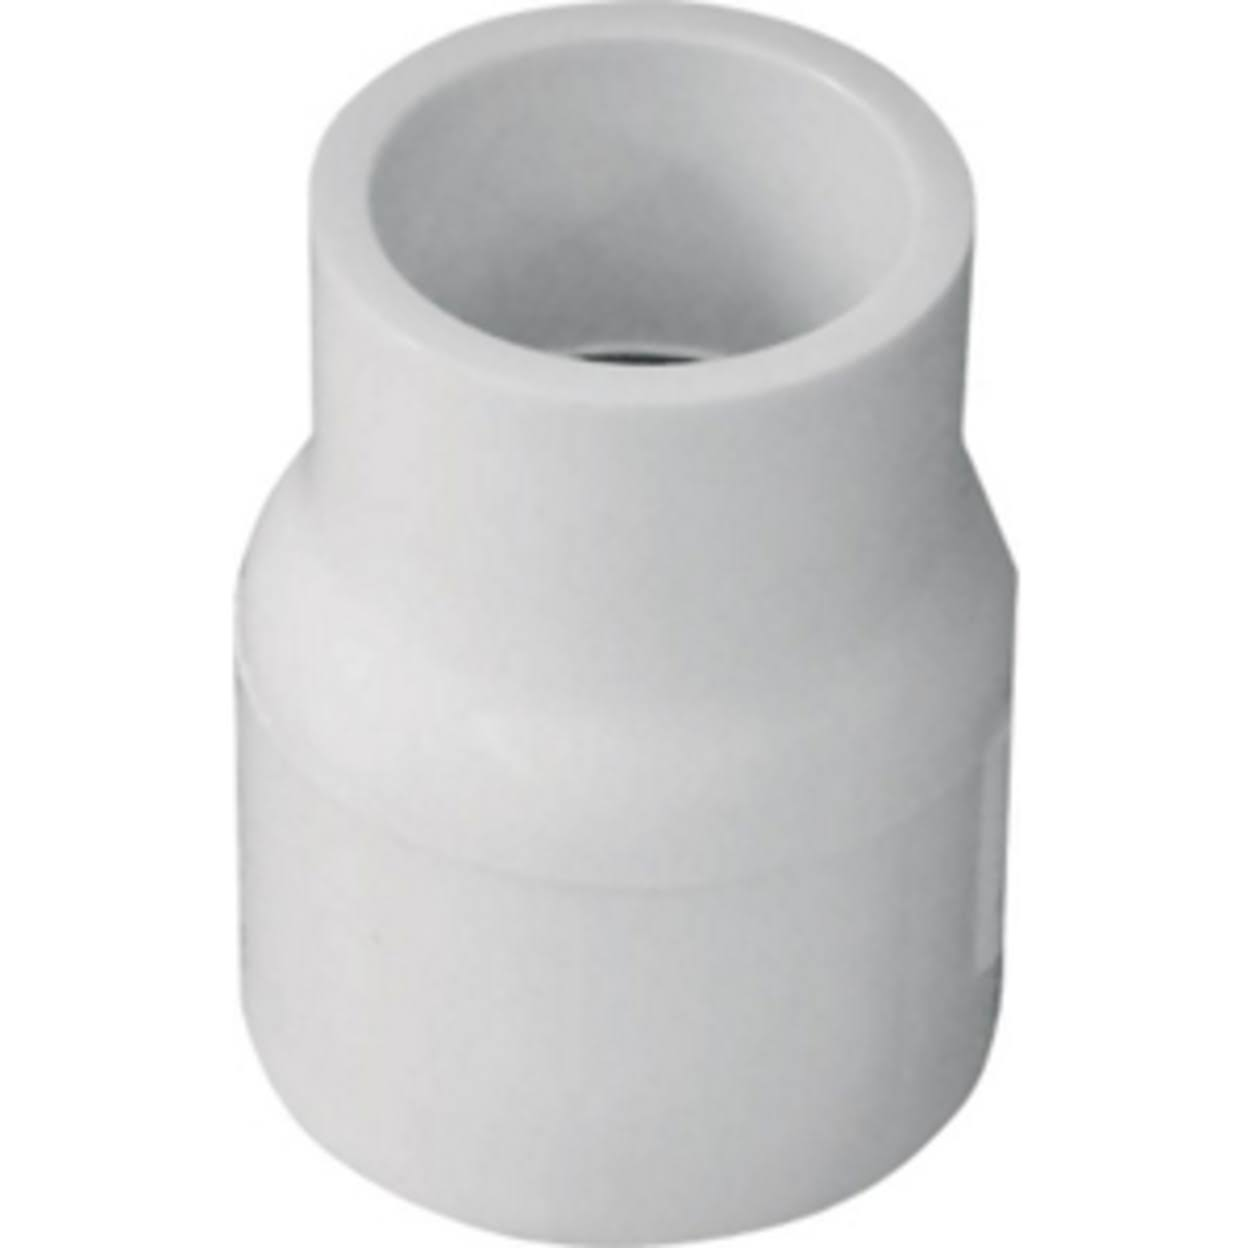 "Genova Products Pvc Schedule 40 Reducing Coupling - 1"" x 3/4"""